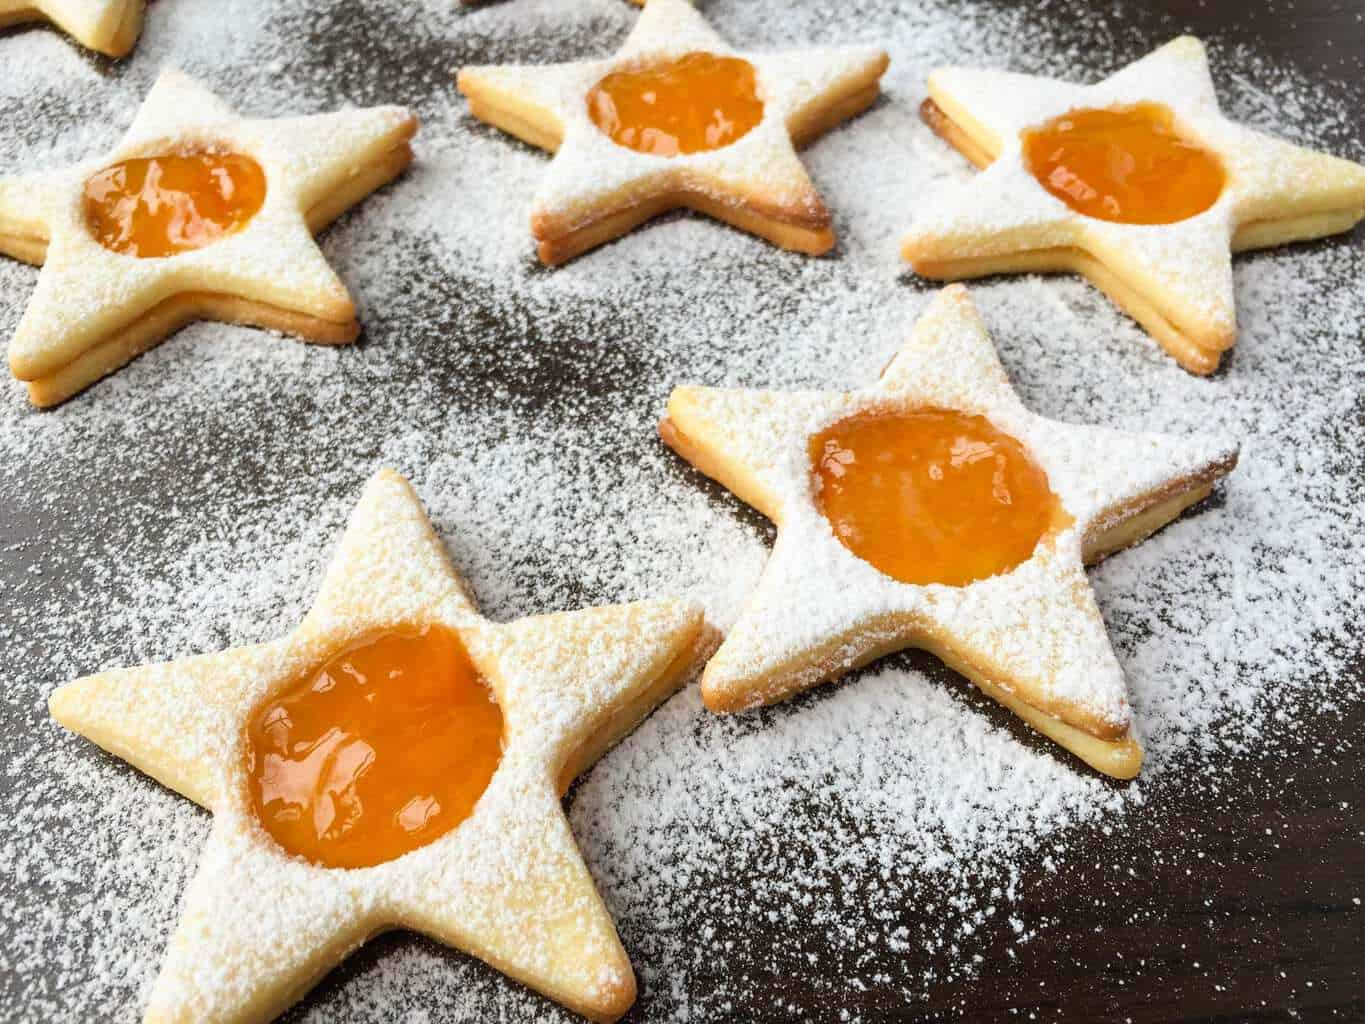 How To Make Homemade Cookies With Jam